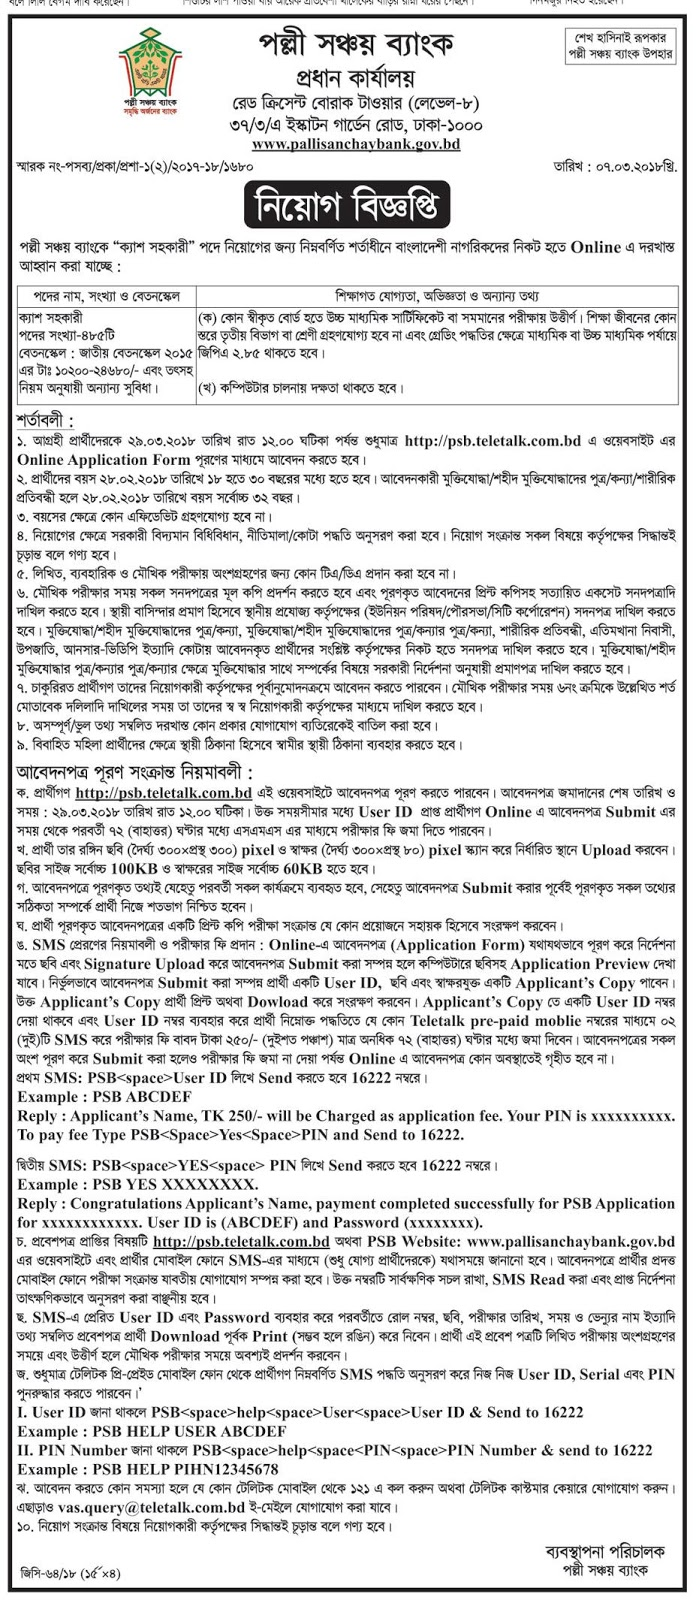 Palli Sanchay Bank (PSB) Cash Assistant Recruitment Circular 2018